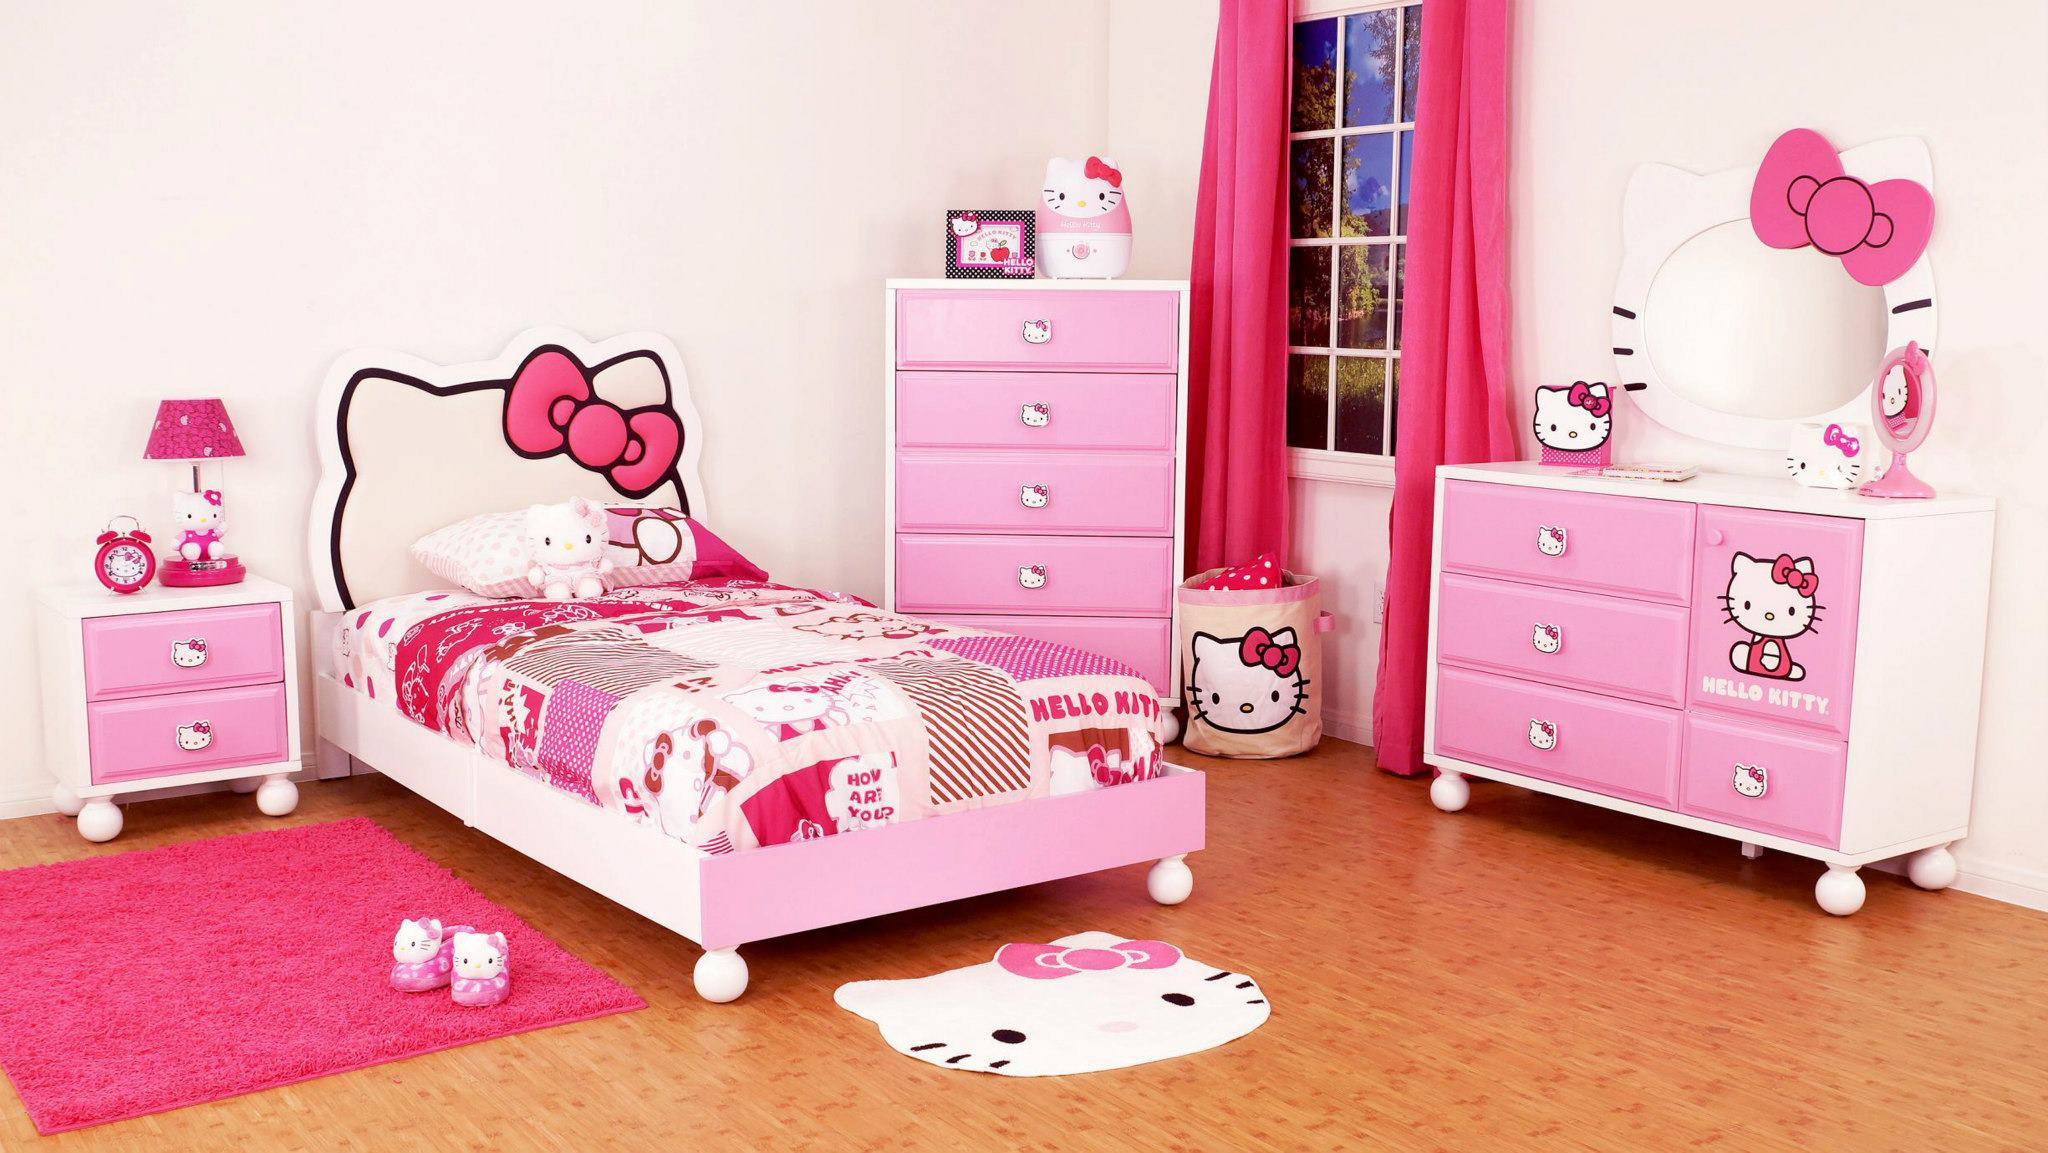 Best ideas about Kid Bedroom Sets . Save or Pin Theme oriented bedroom for your kids Now.